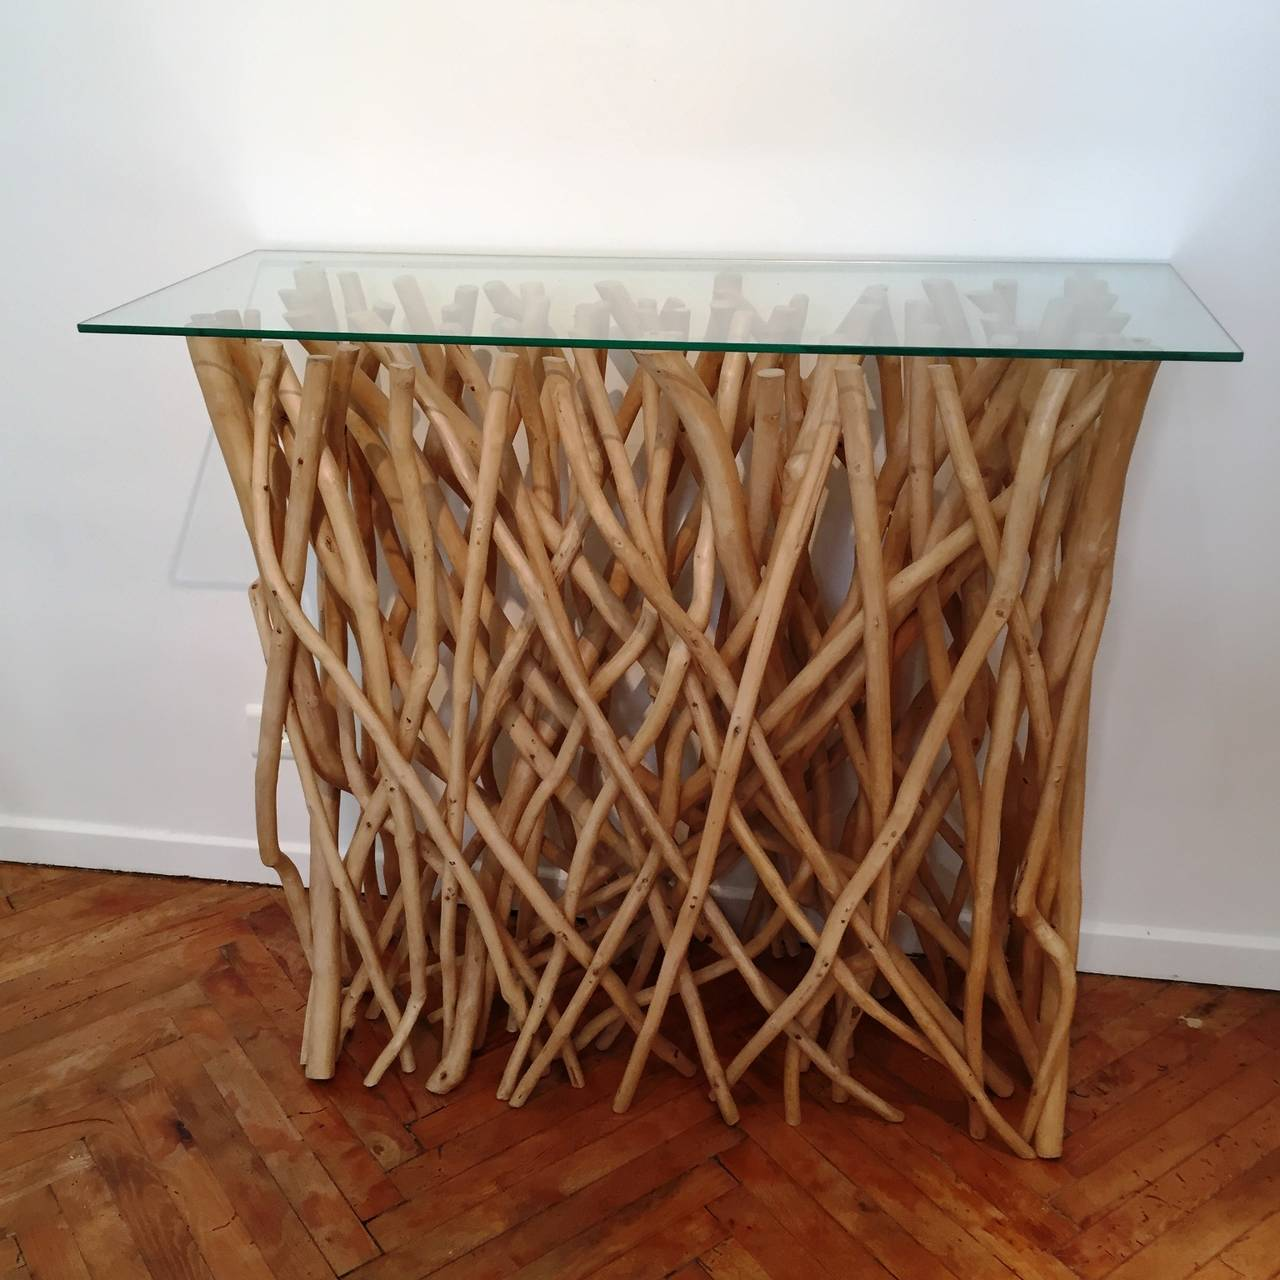 Unique console in driftwood and glass for sale at 1stdibs for Unique console tables for sale